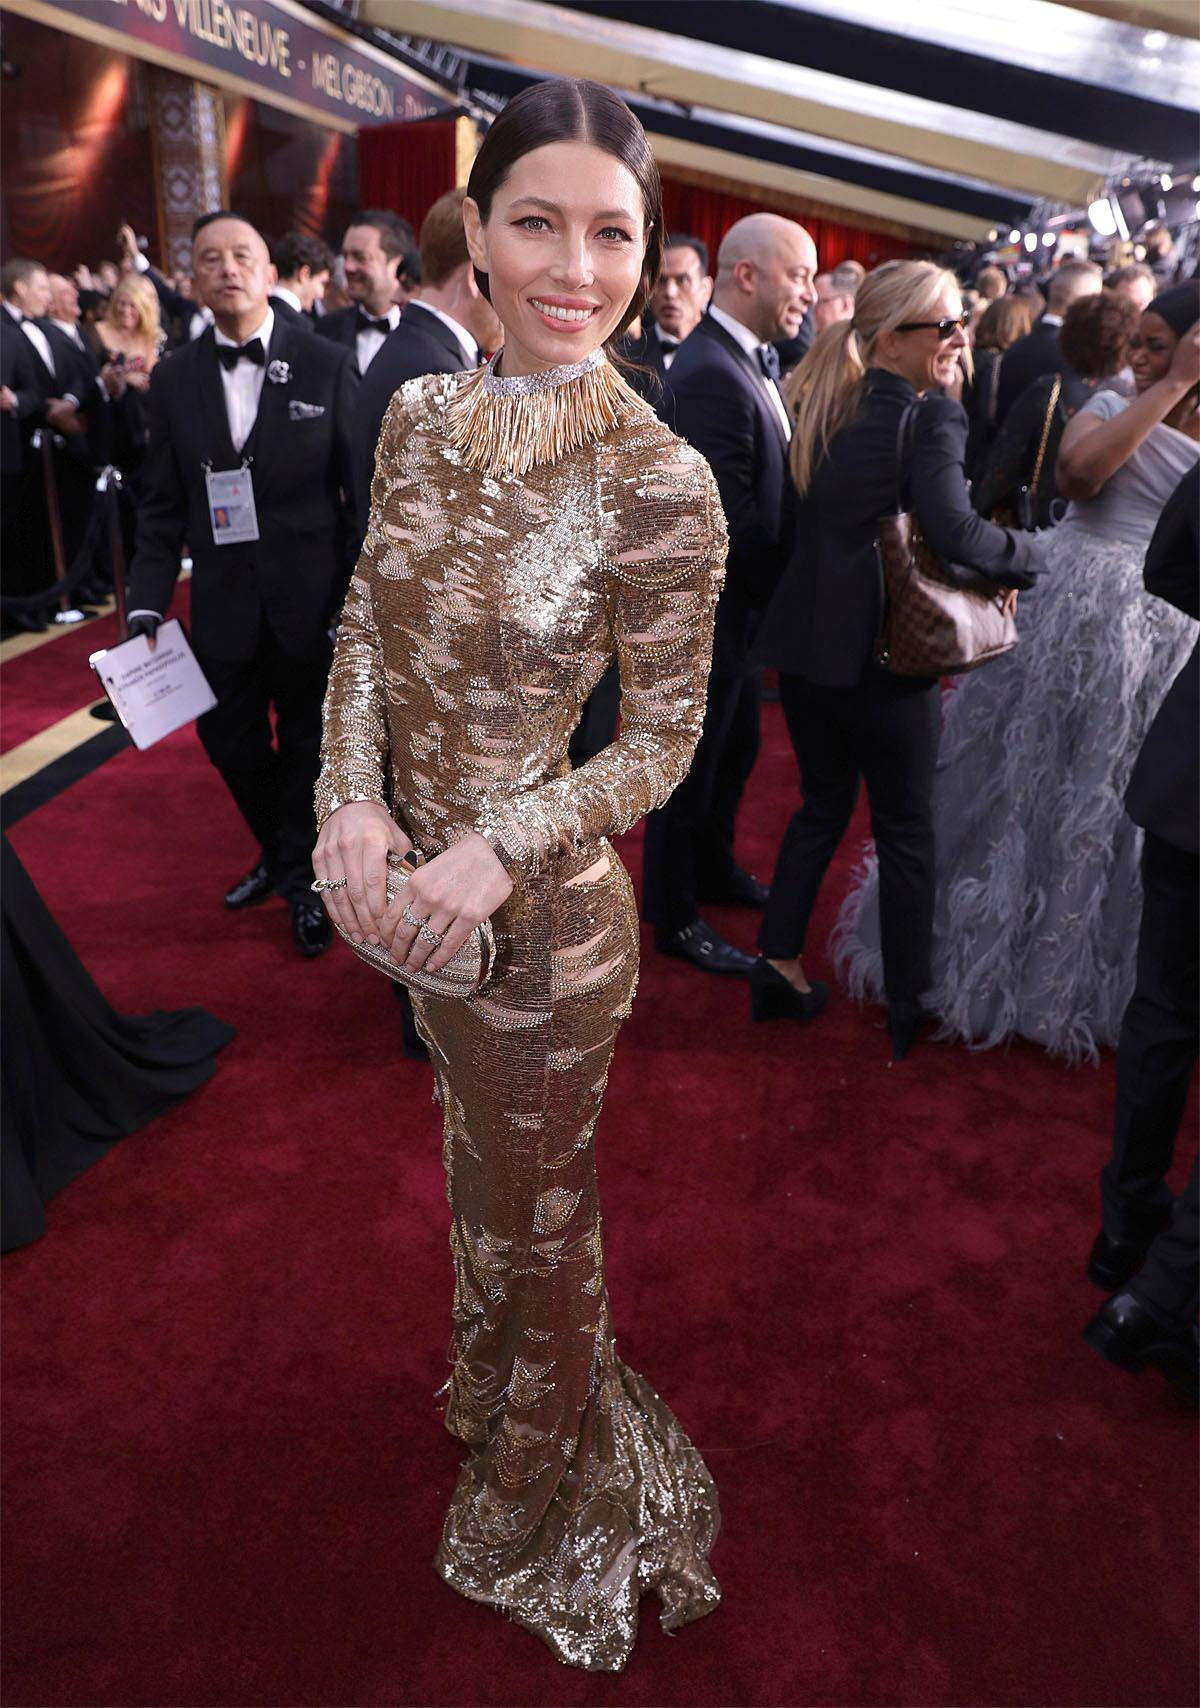 Jessica Biel arrives at the Oscars on Sunday, Feb. 26, 2017, at the Dolby Theatre in Los Angeles. (Photo by Matt Sayles/Invision/AP)